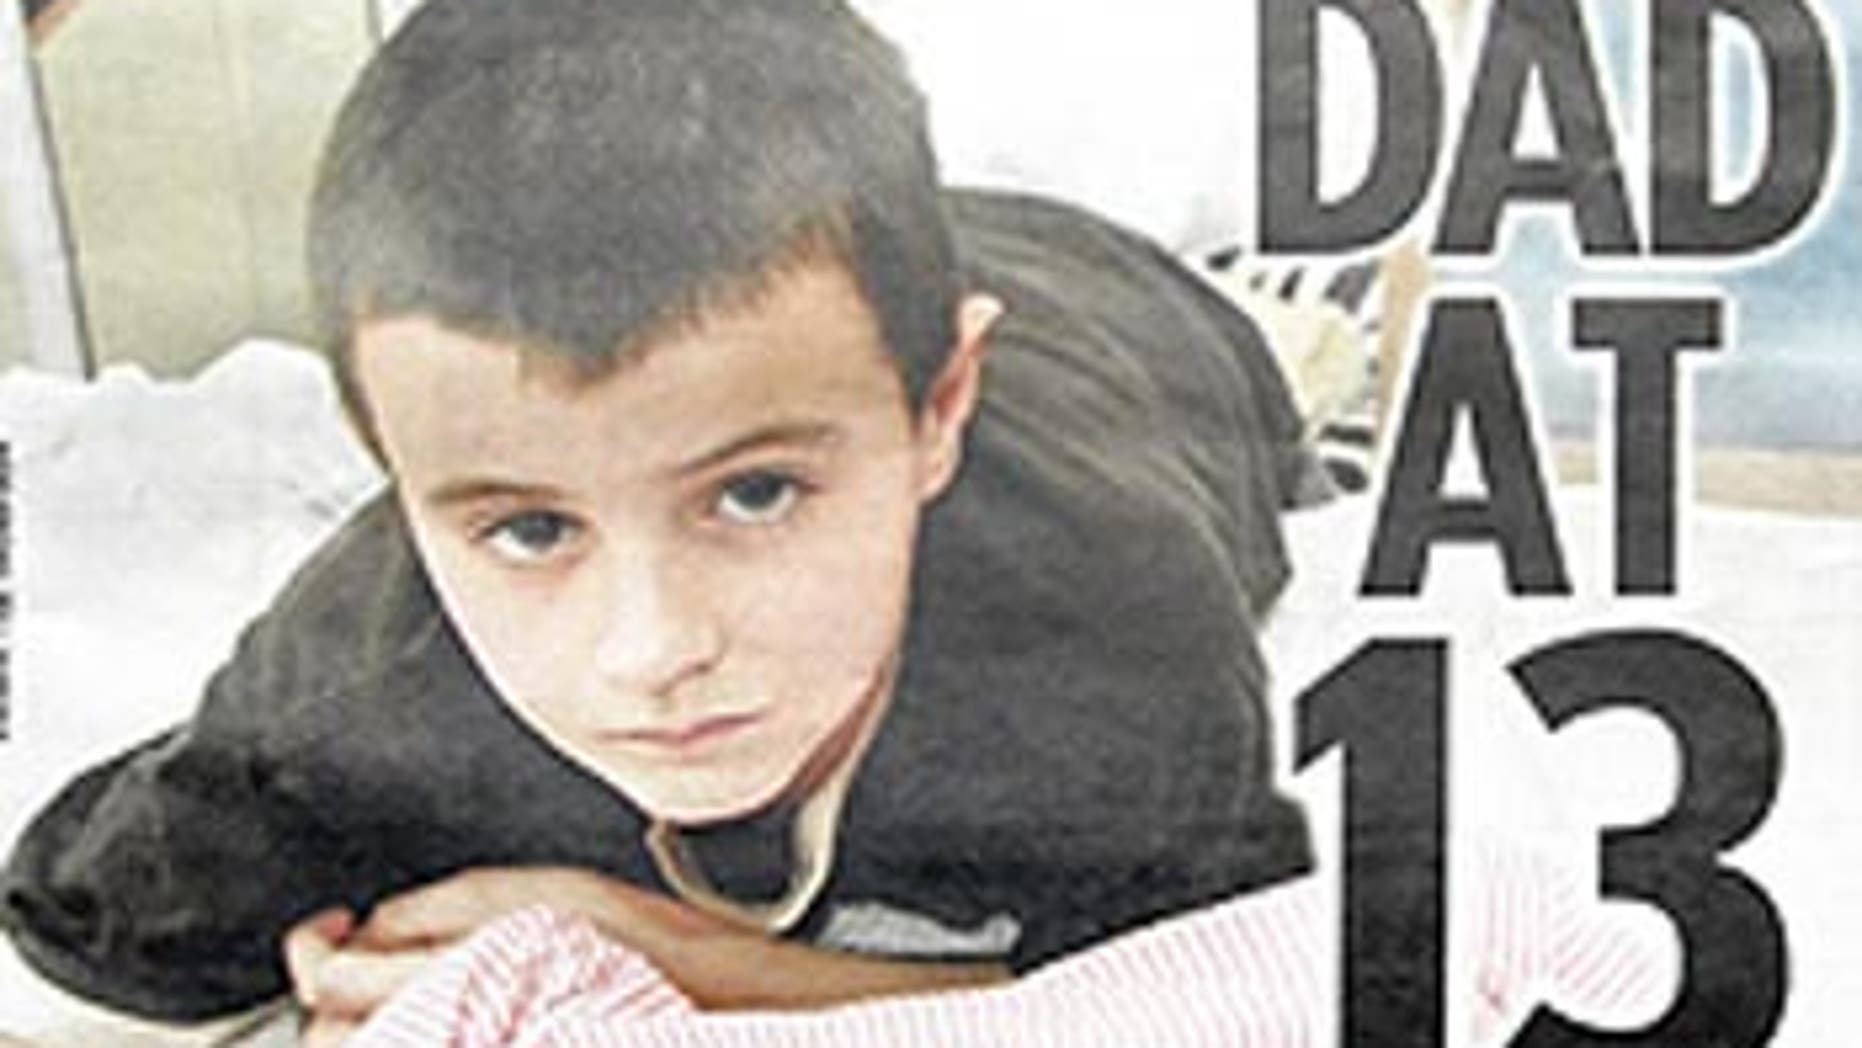 This image shows the cover of The Sun featuring 13-year-old Alfie Patten.